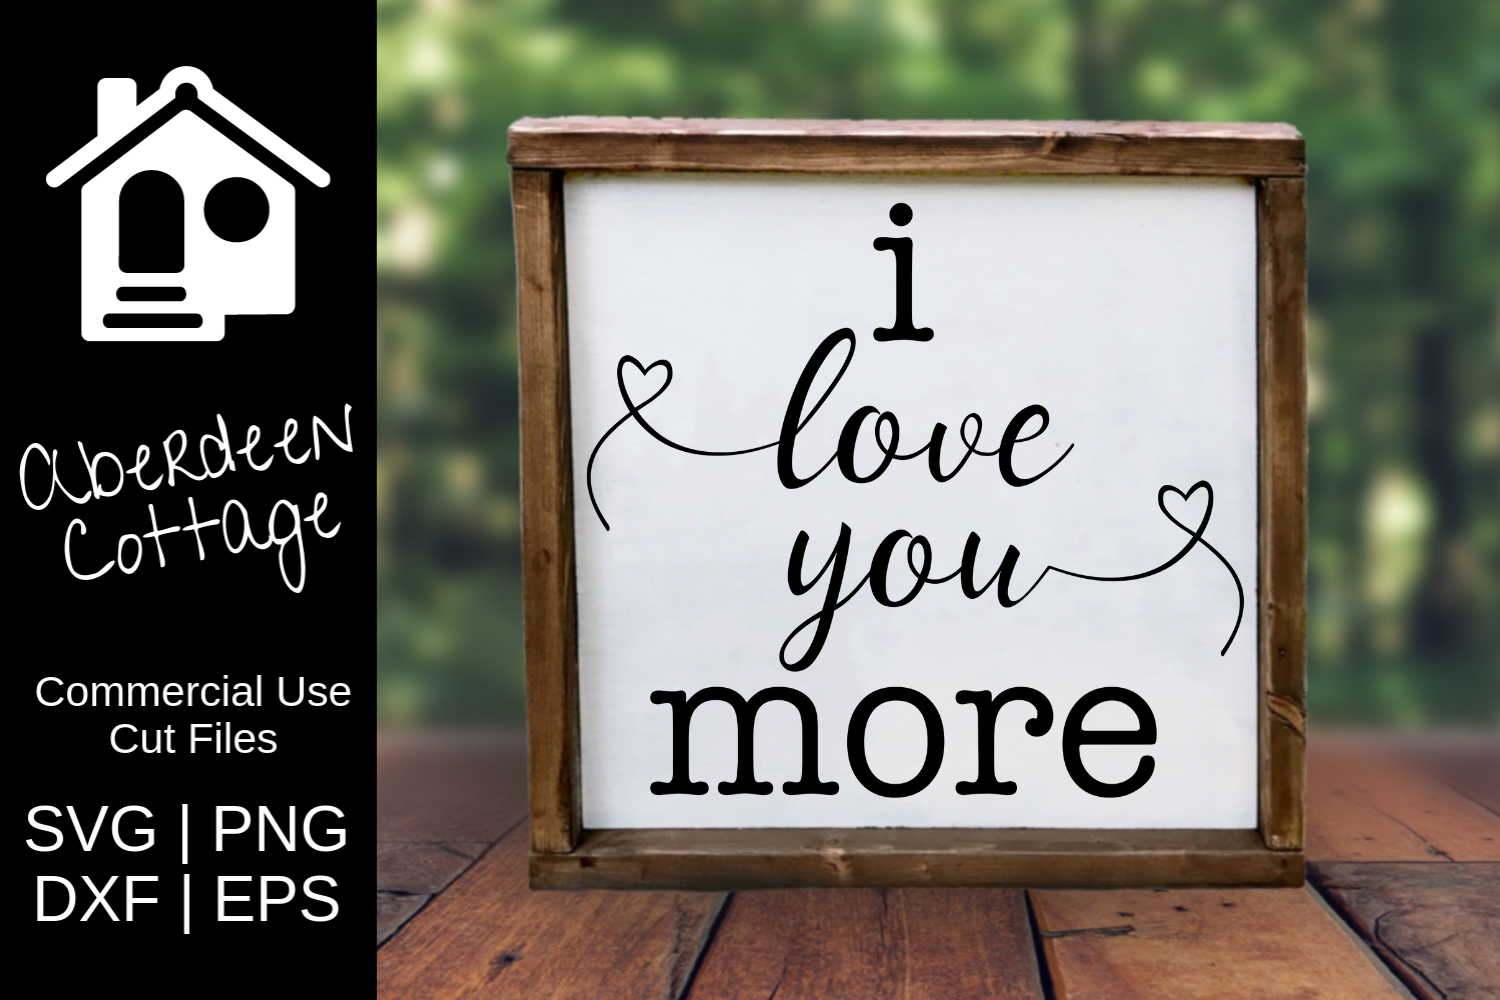 Download Free I Love You More Svg Graphic By Aberdeencottage Creative Fabrica for Cricut Explore, Silhouette and other cutting machines.